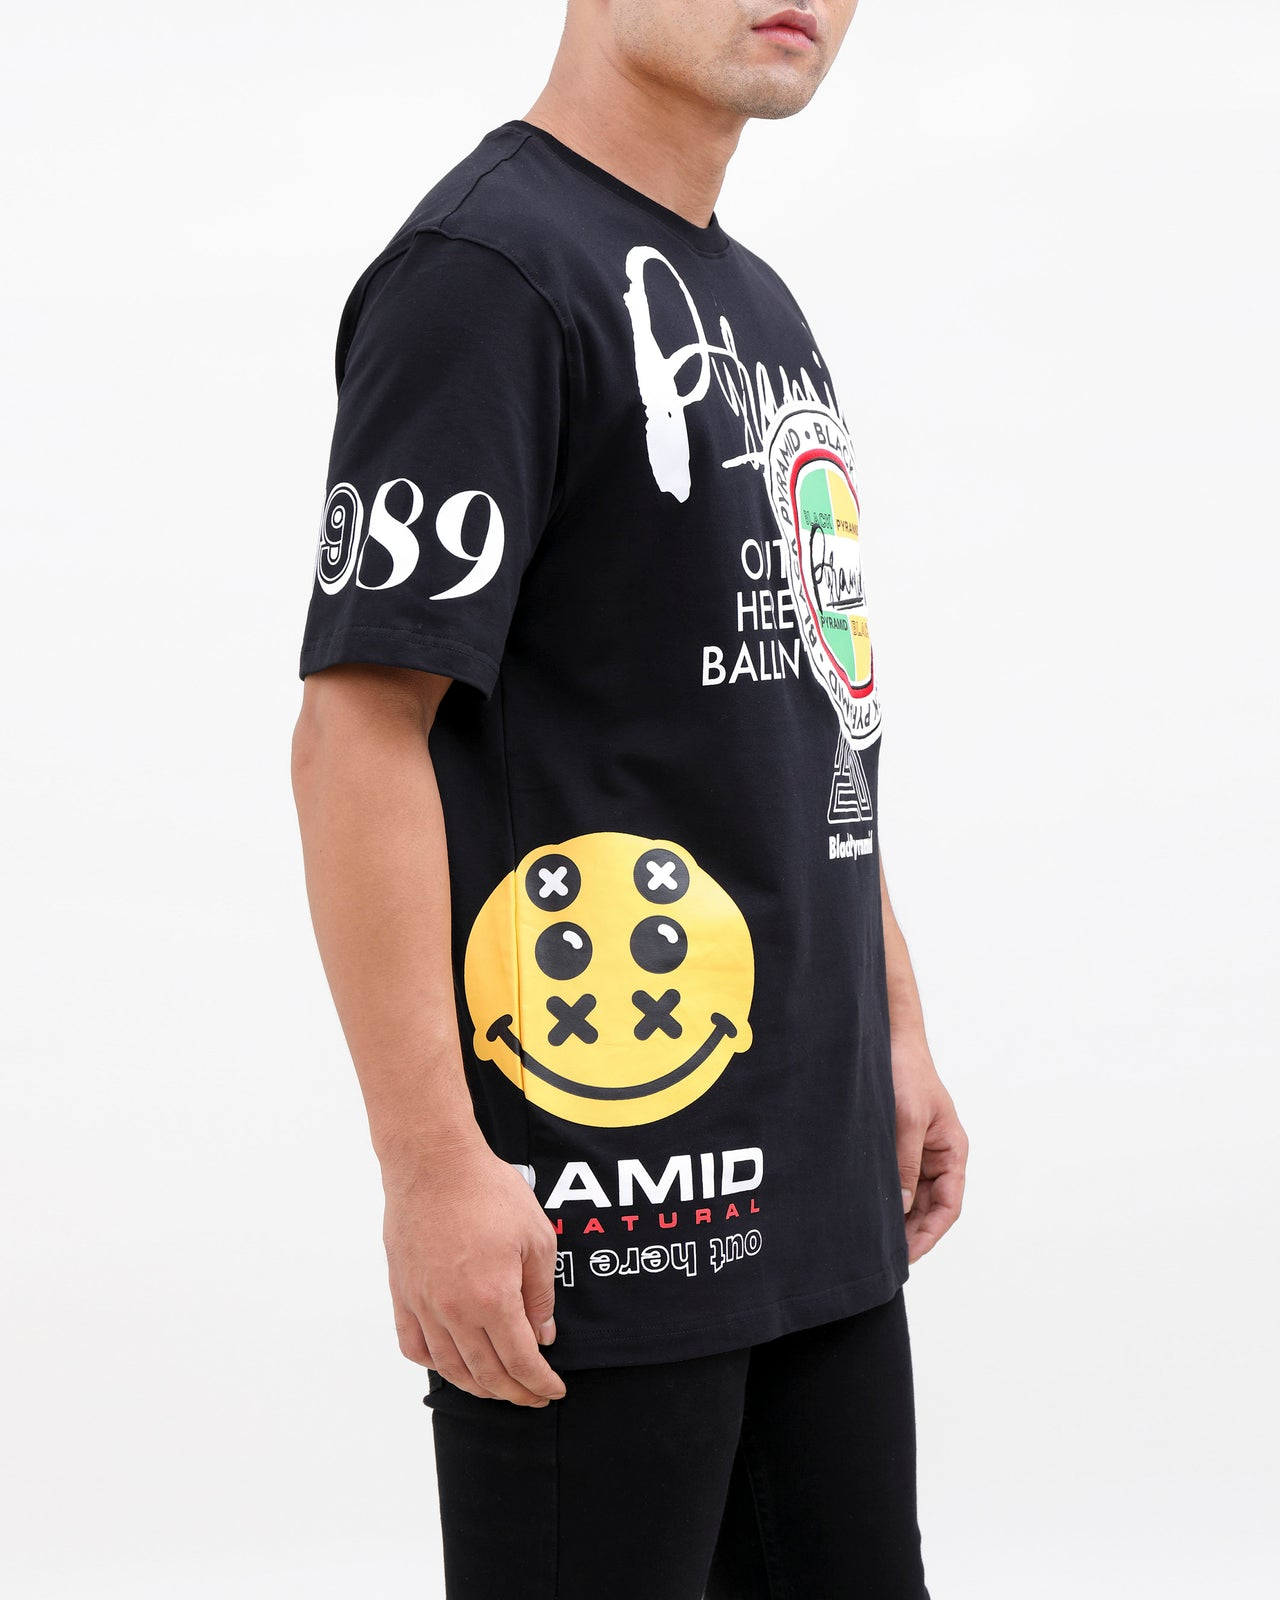 WORLD FAMOUS LOGOS SHIRT-COLOR: BLACK